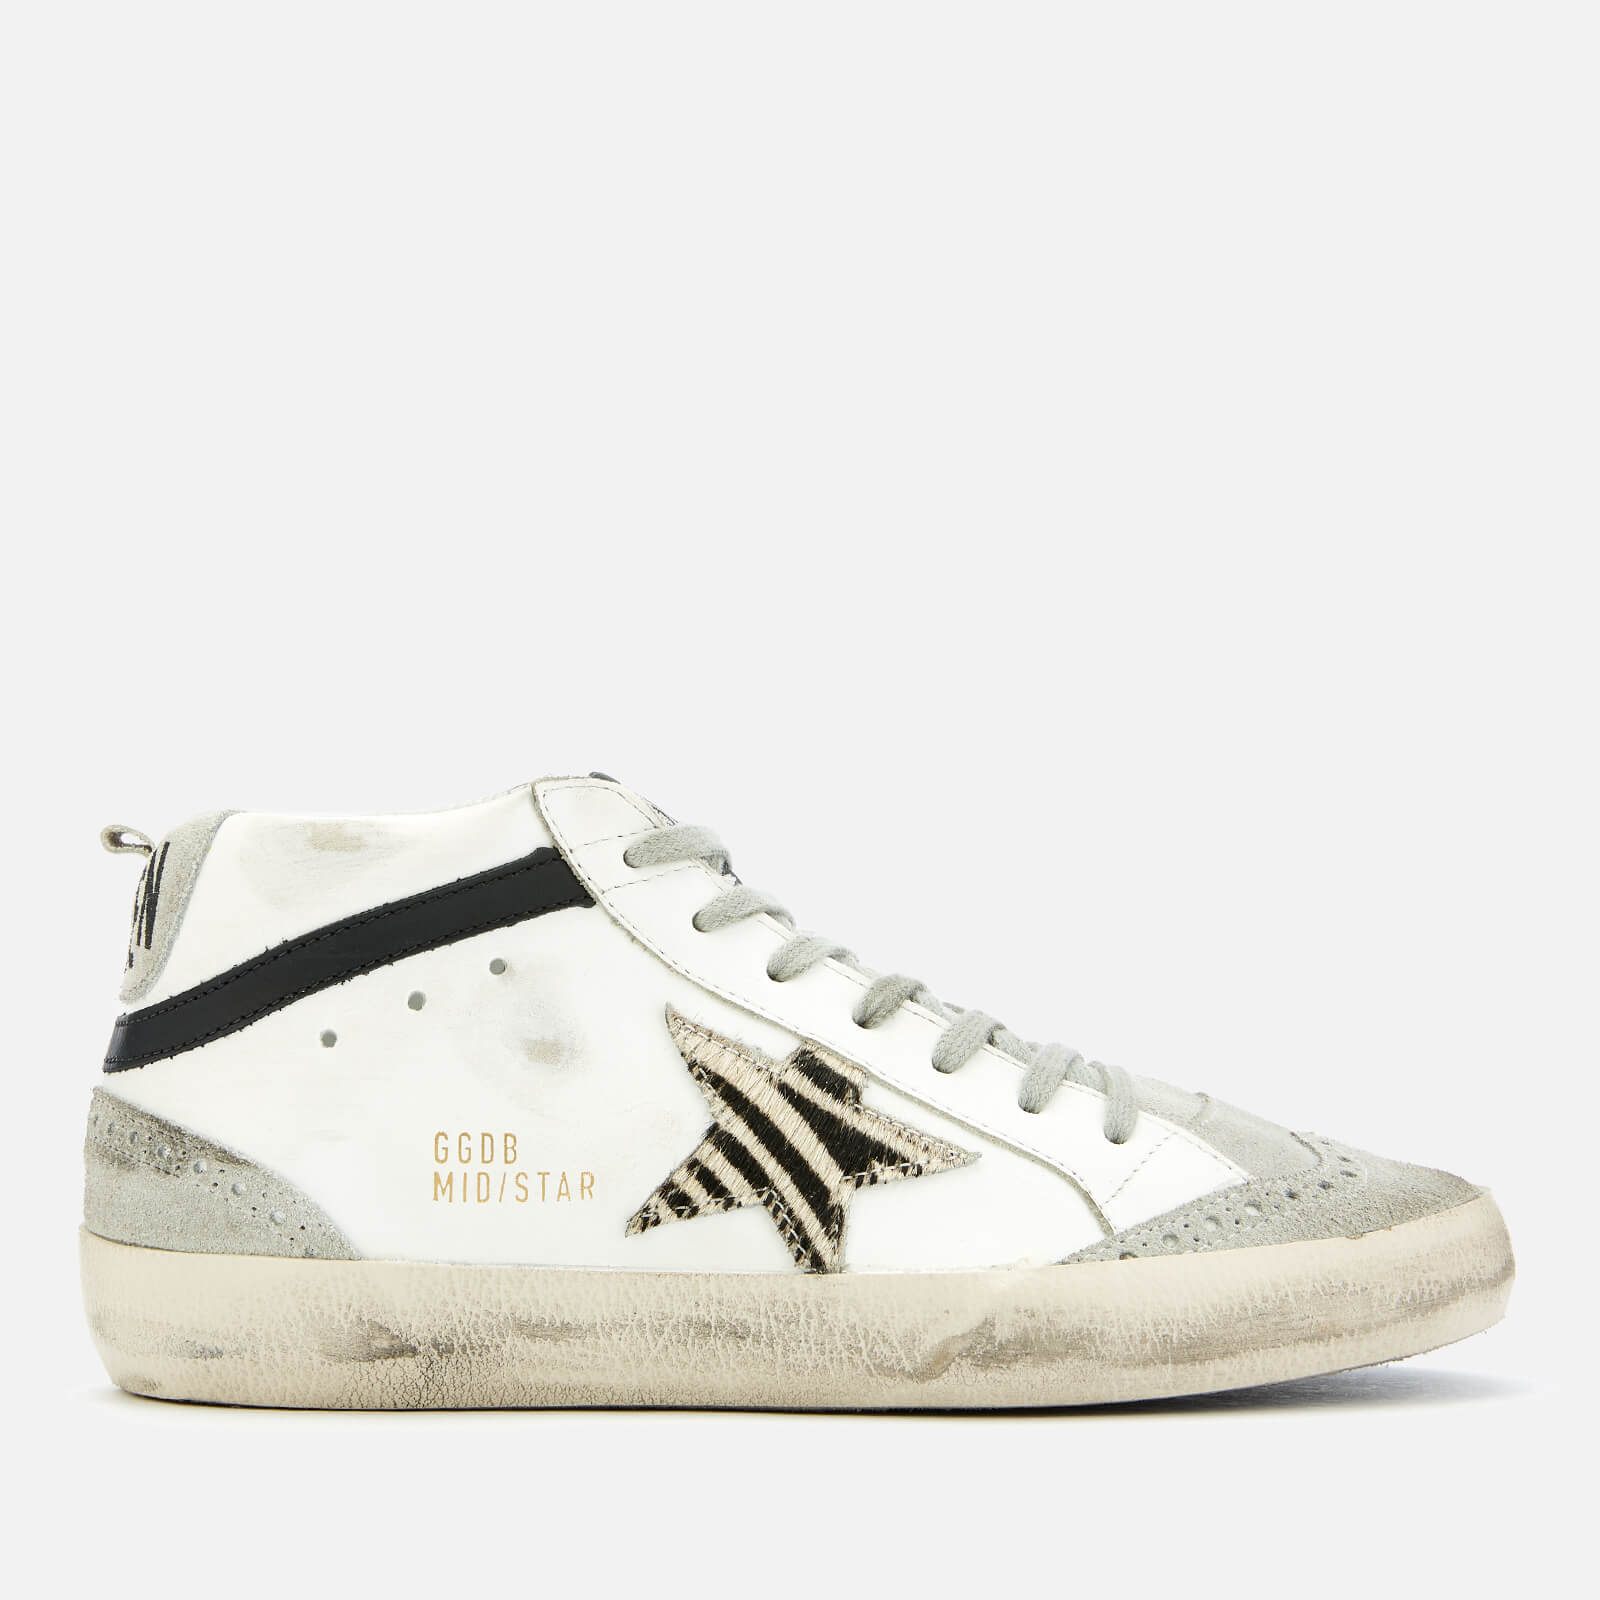 e0a6d2102497 Golden Goose Deluxe Brand Women s Mid Star Leather Trainers - White Zebra  Star - Free UK Delivery over £50